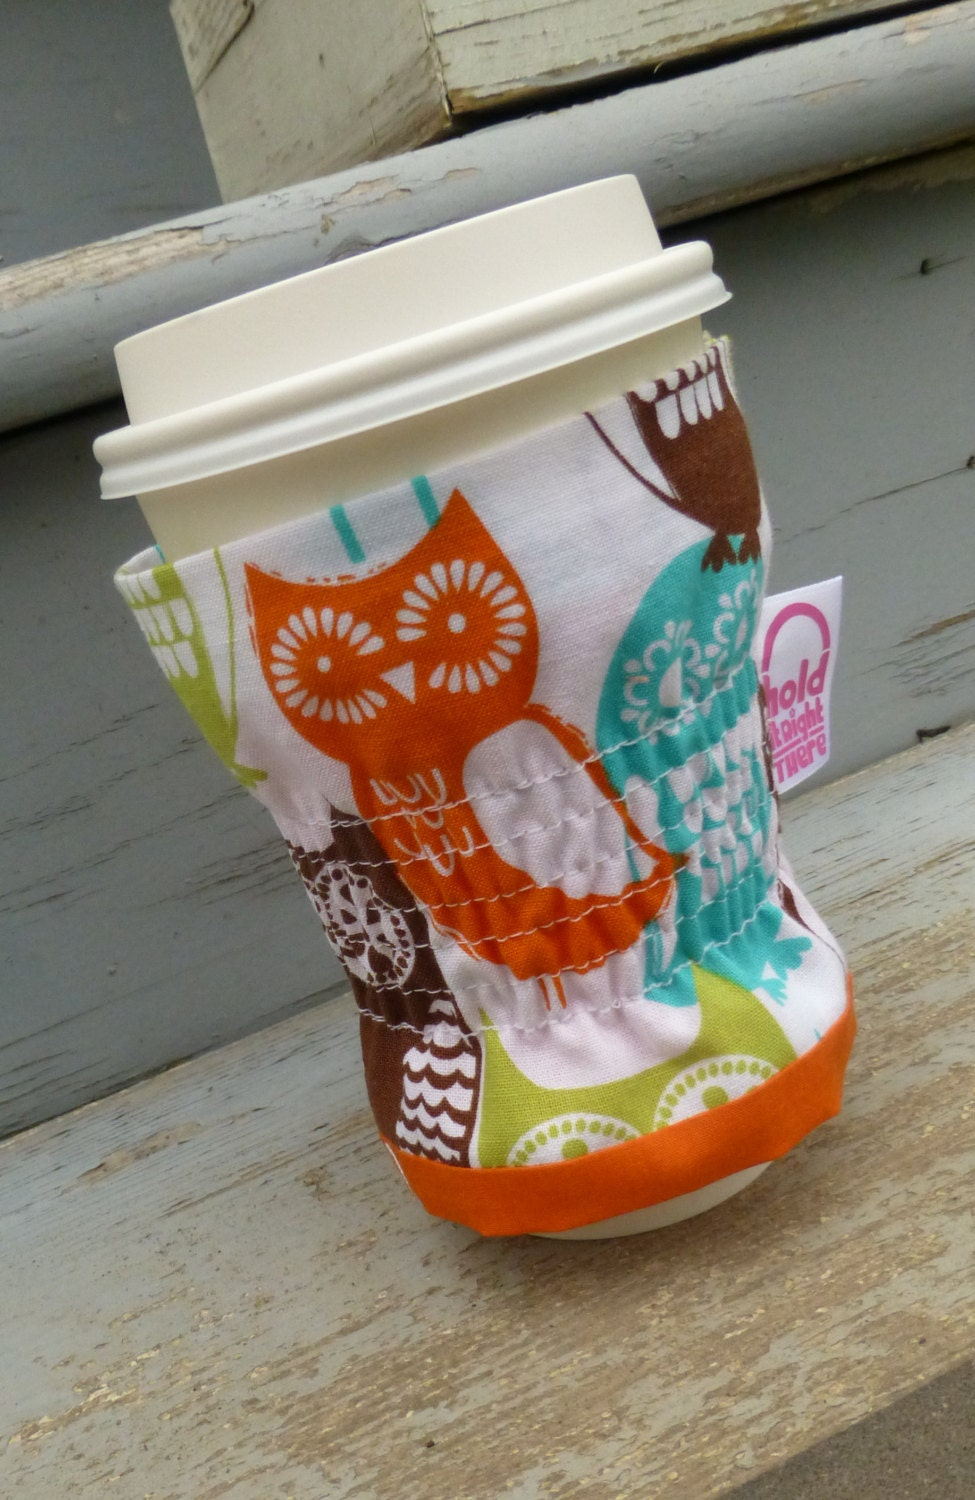 JAVA JACKET - Reusable Beverage Sleeve - Elasticized Shirred Coffee Cozy  - Michael Miller's Swedish Owl Print Cotton Fabric - HolditRightThereBags